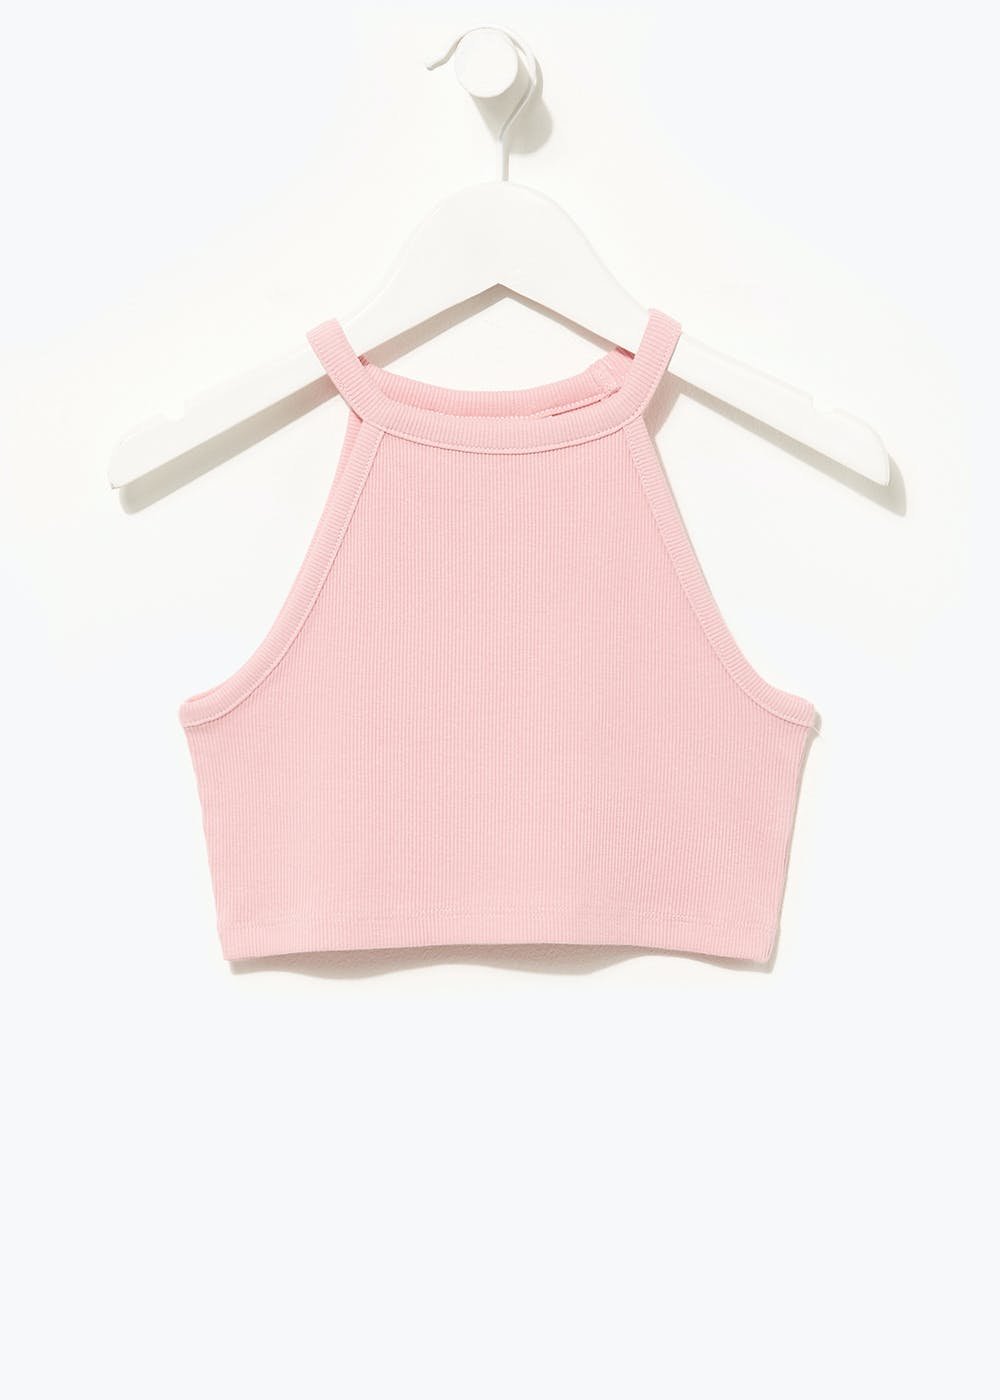 Girls Candy Couture Cropped Vest Top (9-16yrs) – Pink